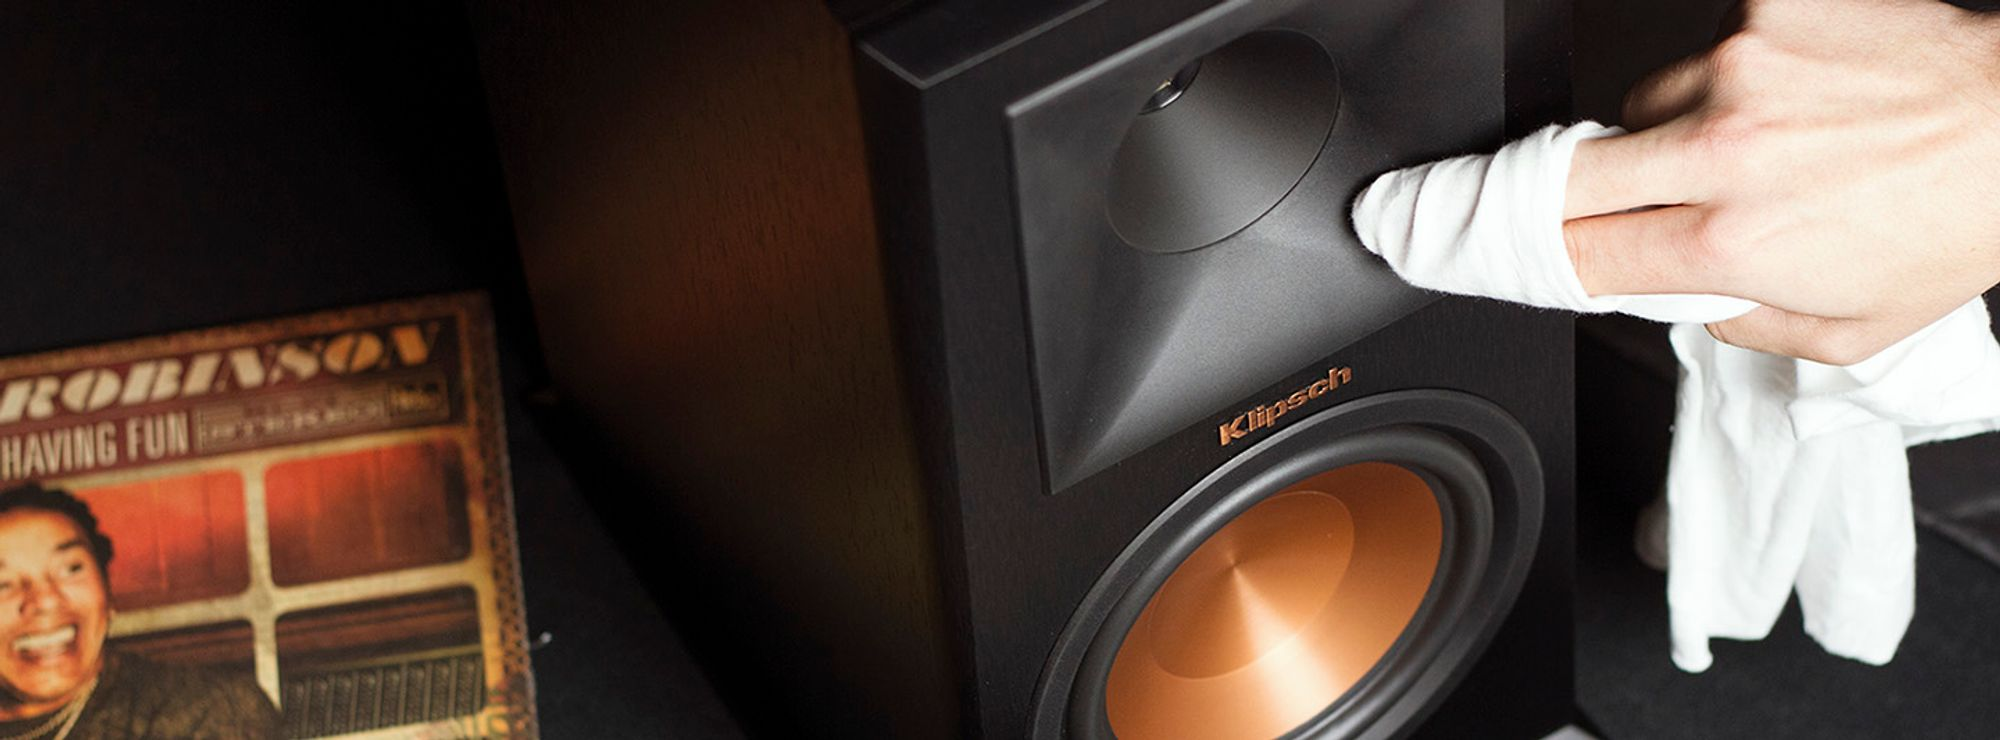 Person wiping a Reference Premiere speaker clean